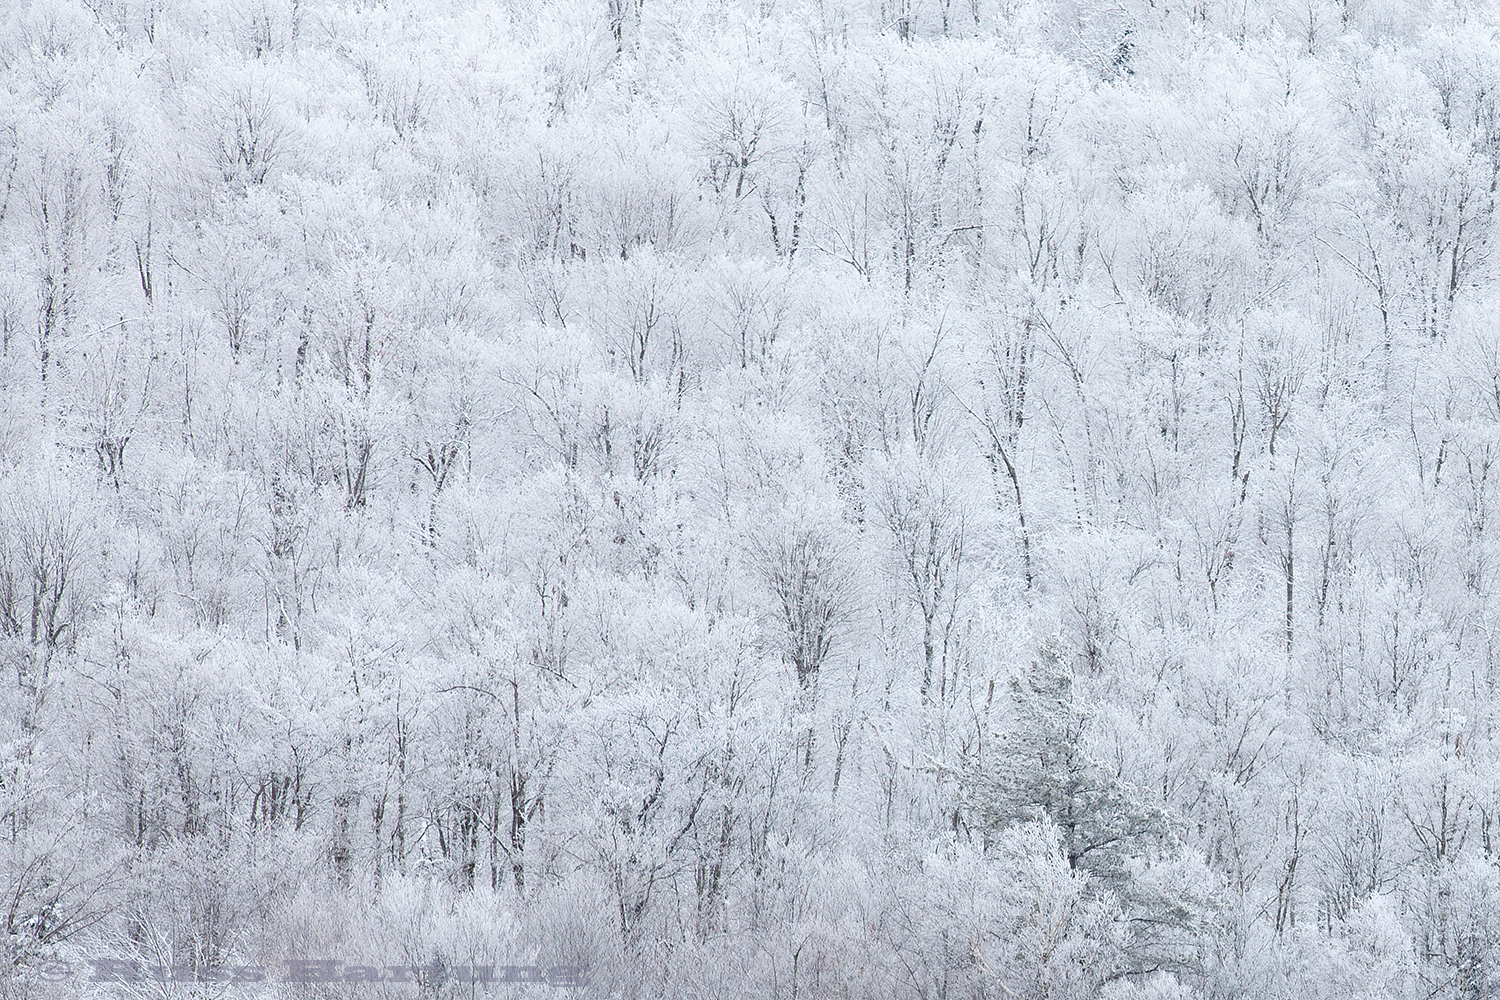 Patterns made by trees and recent snowfall.